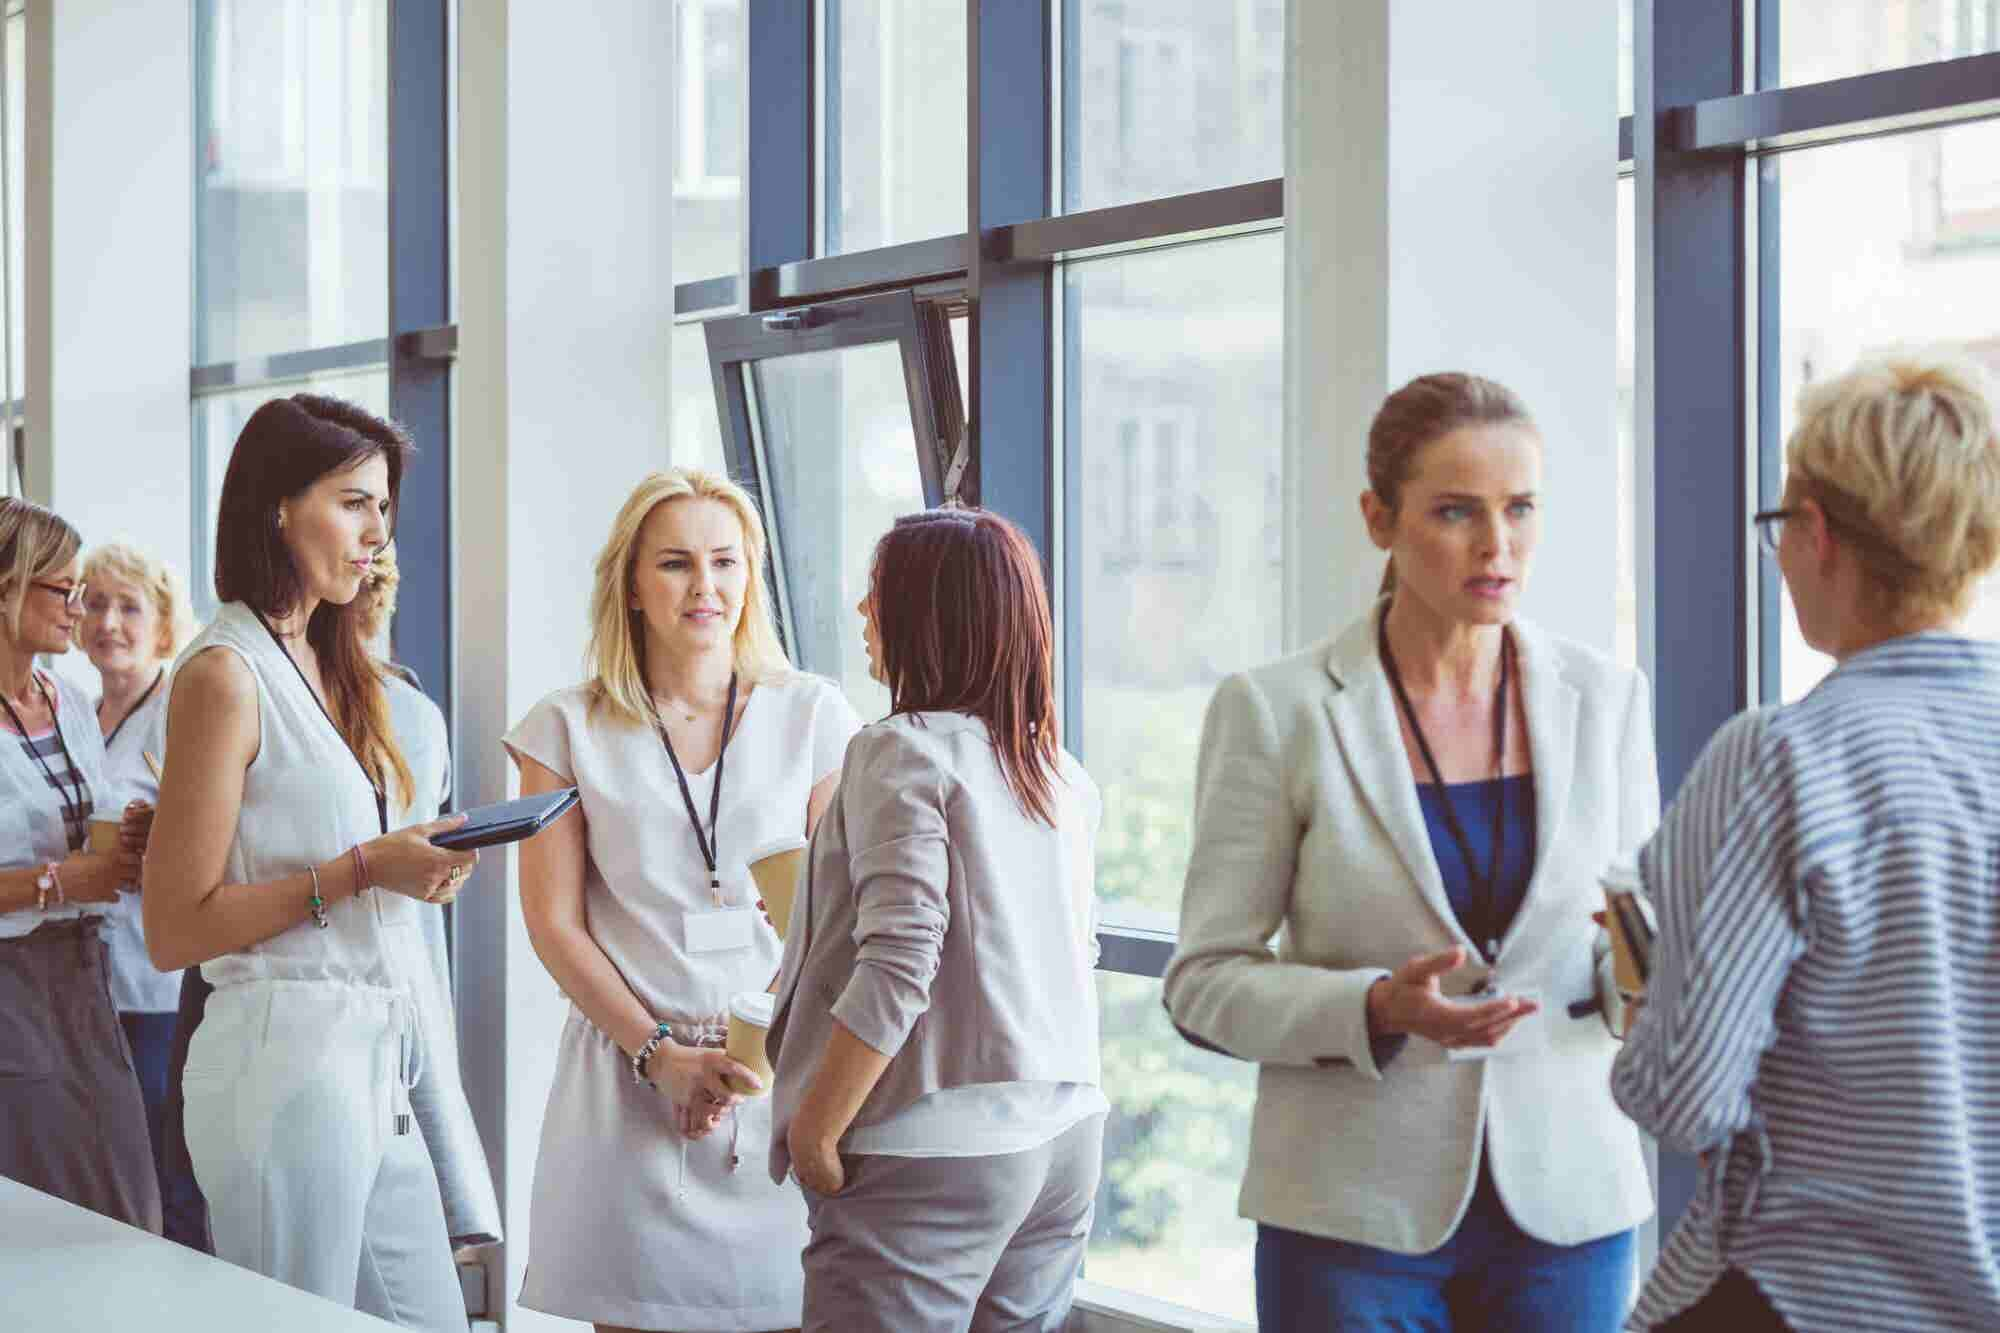 Isolation in Entrepreneurship Is Real. At Business Events, Women Need Empathetic Connections.